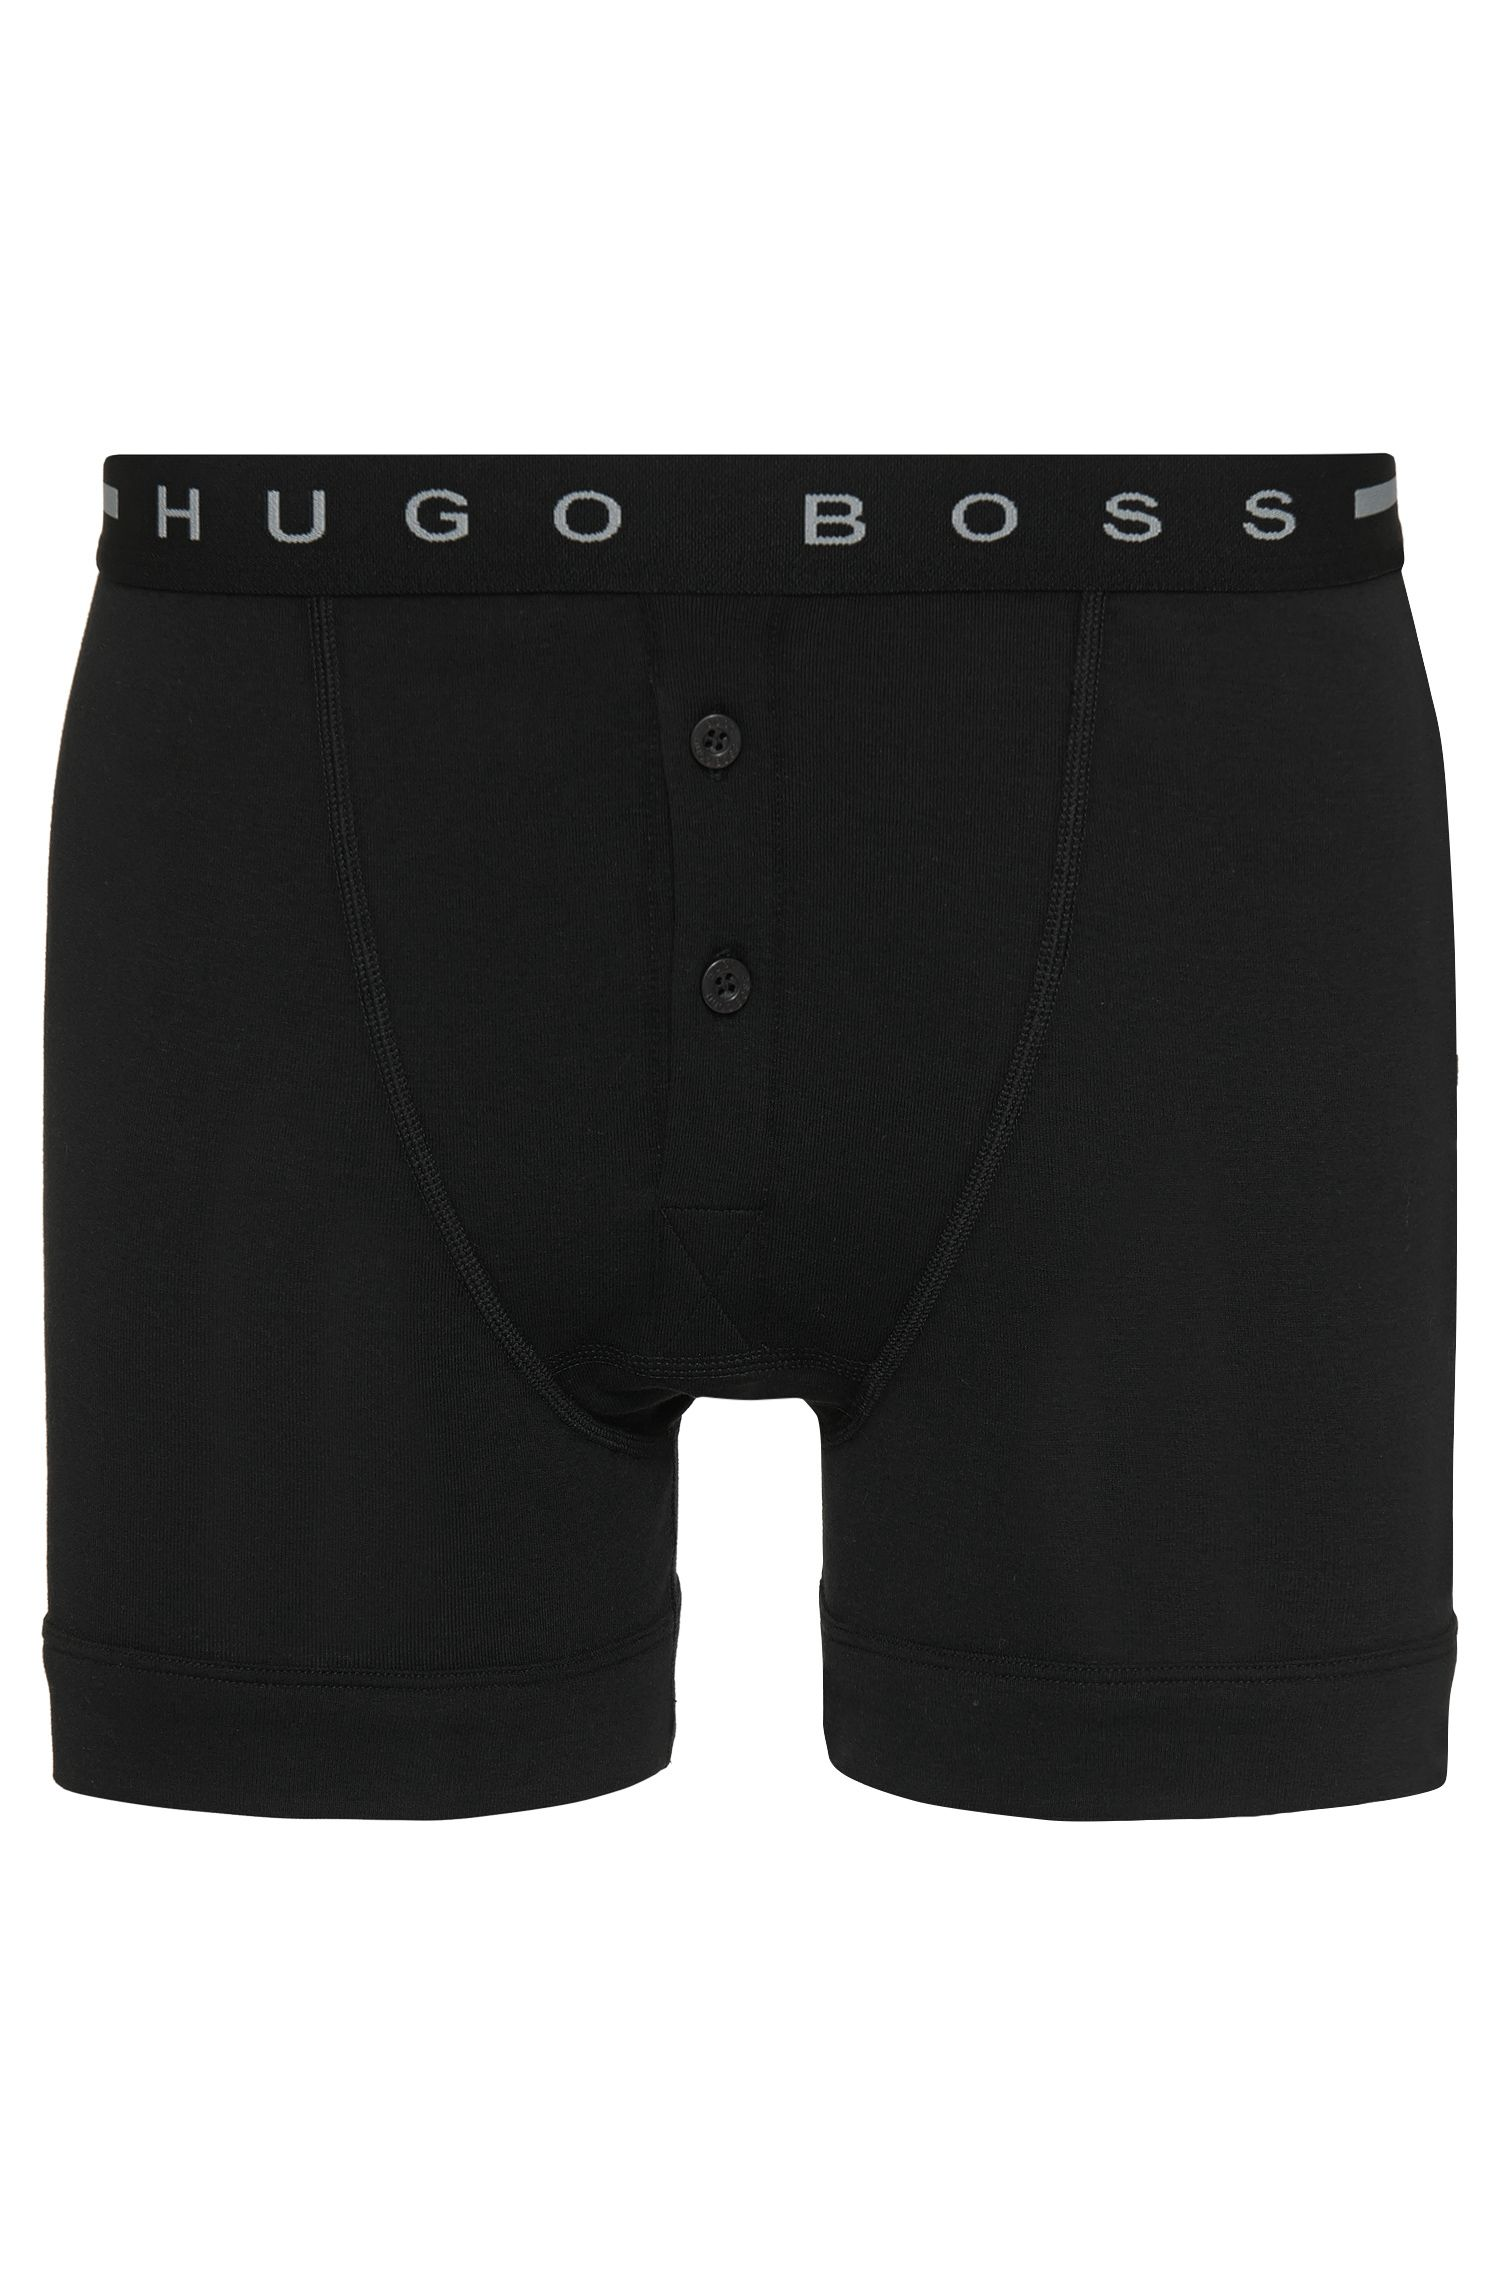 Button-front boxer shorts in cotton rib